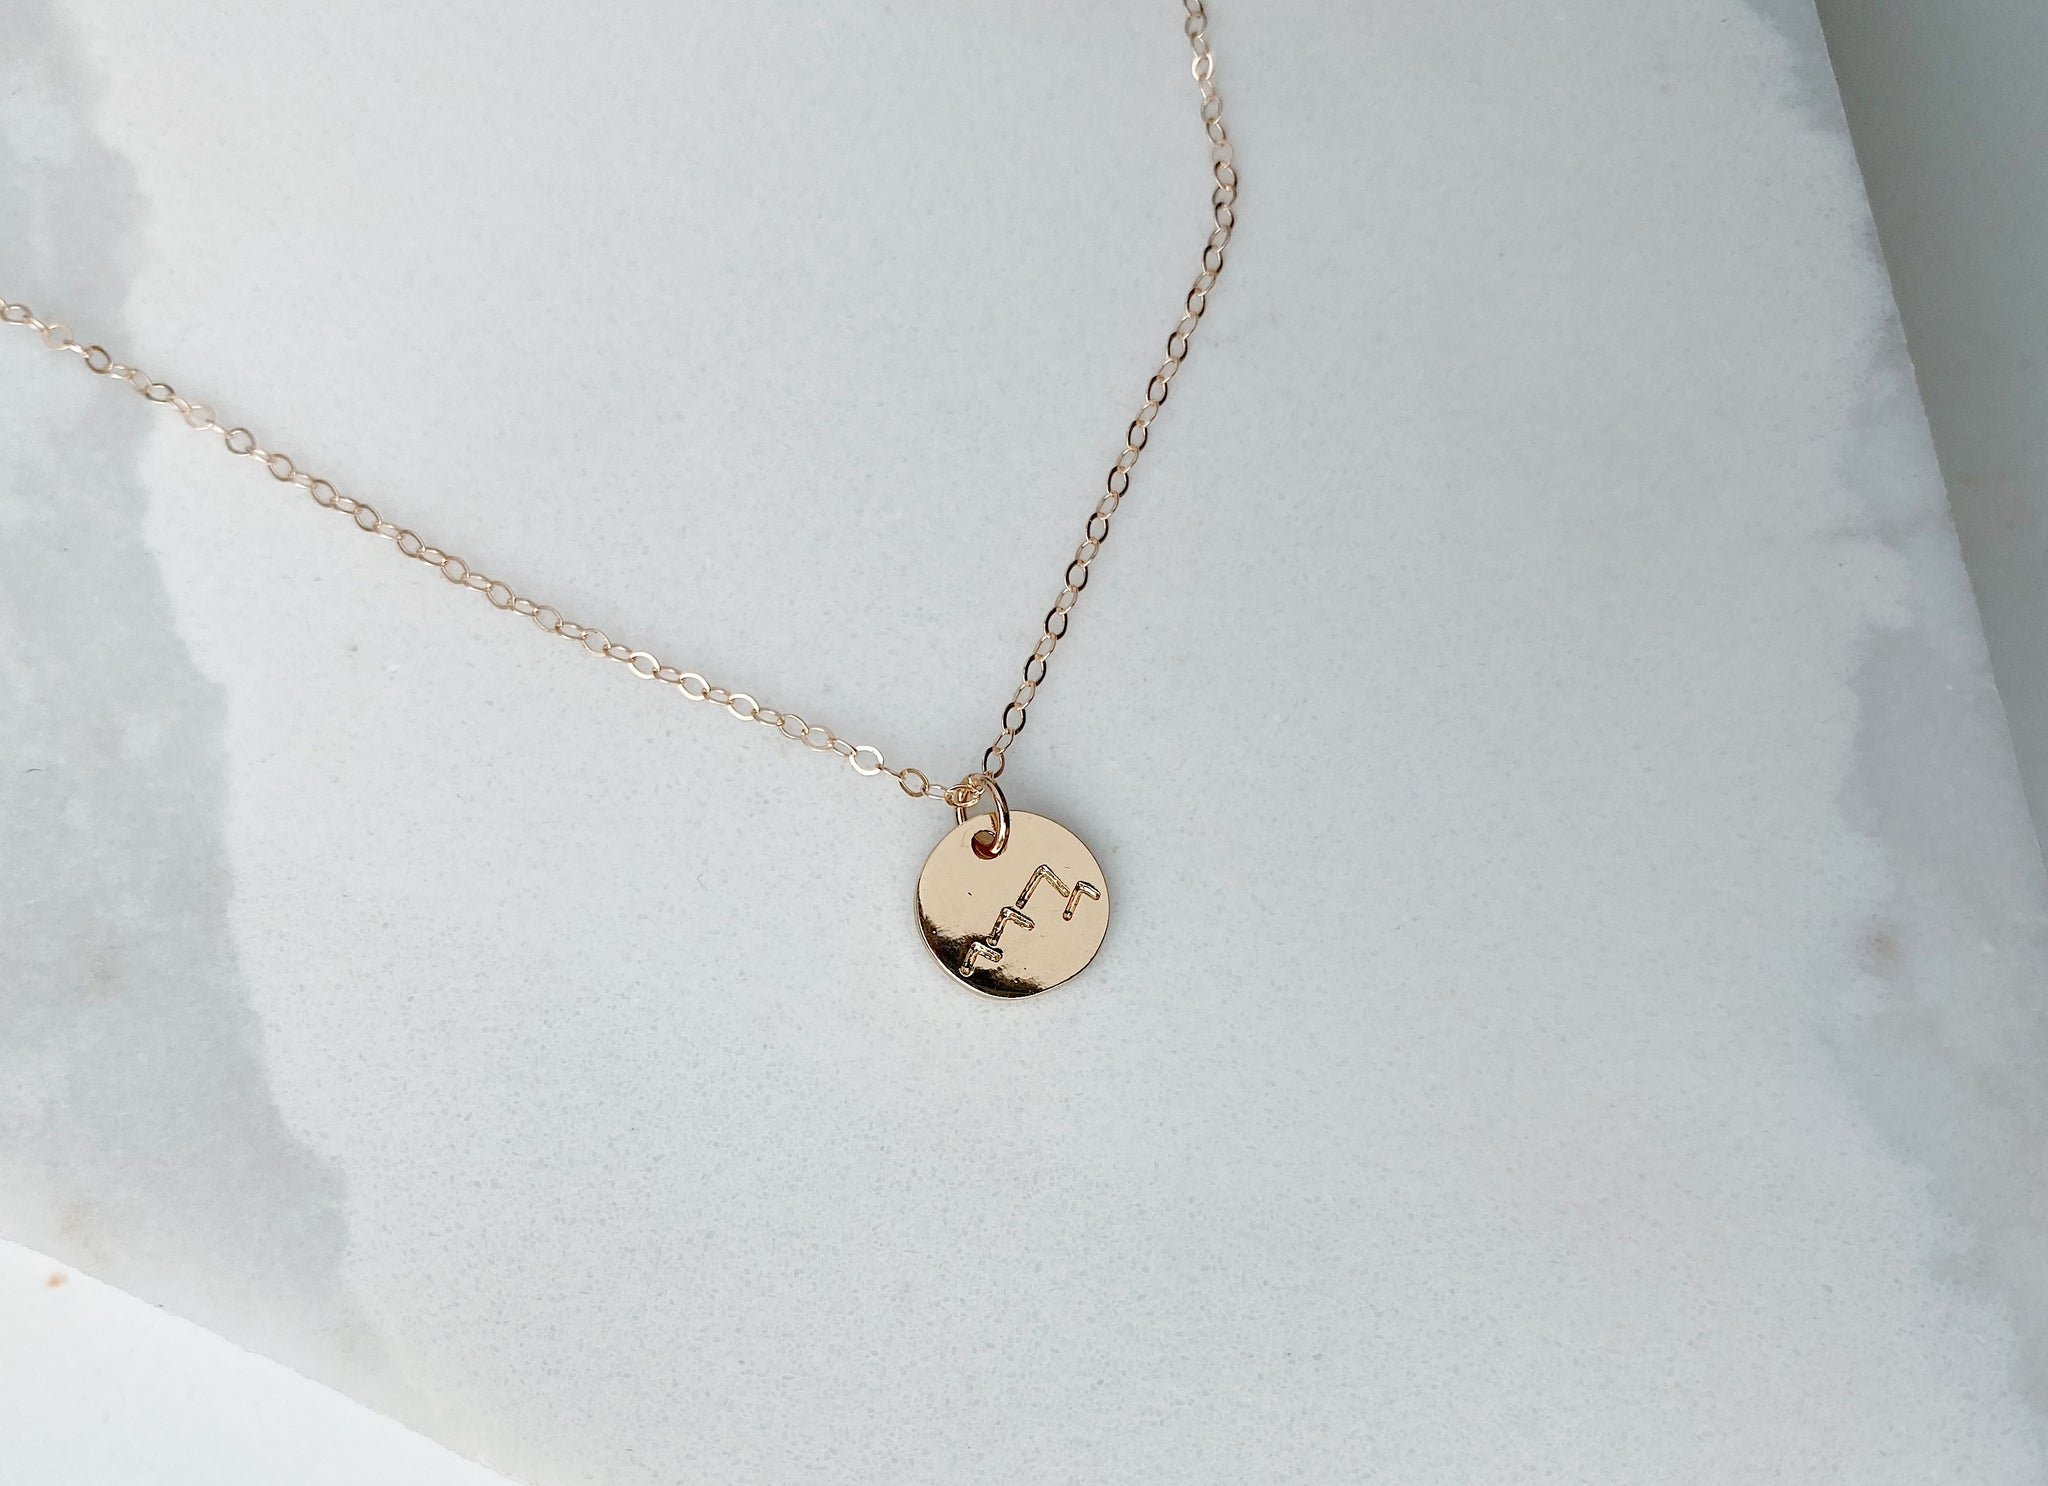 Cal James Necklace